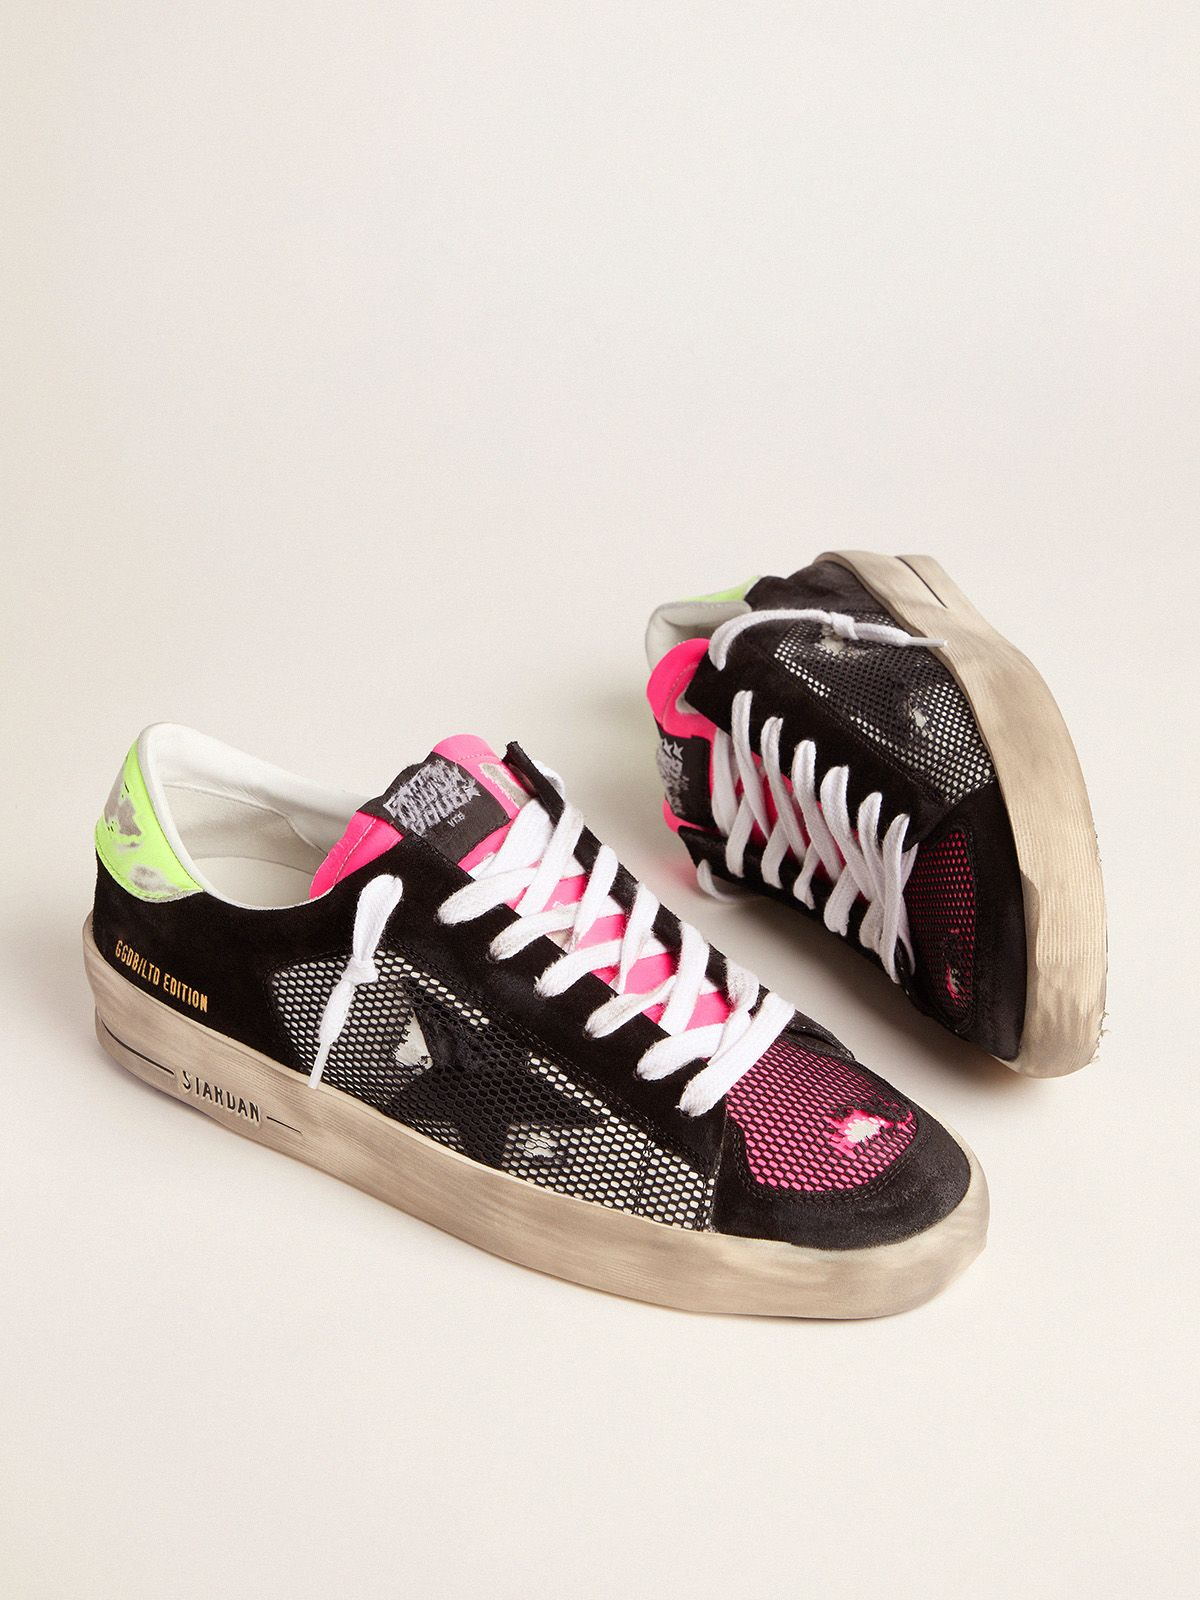 Golden Goose - Men's Limited Edition Stardan sneakers in fuchsia and yellow in